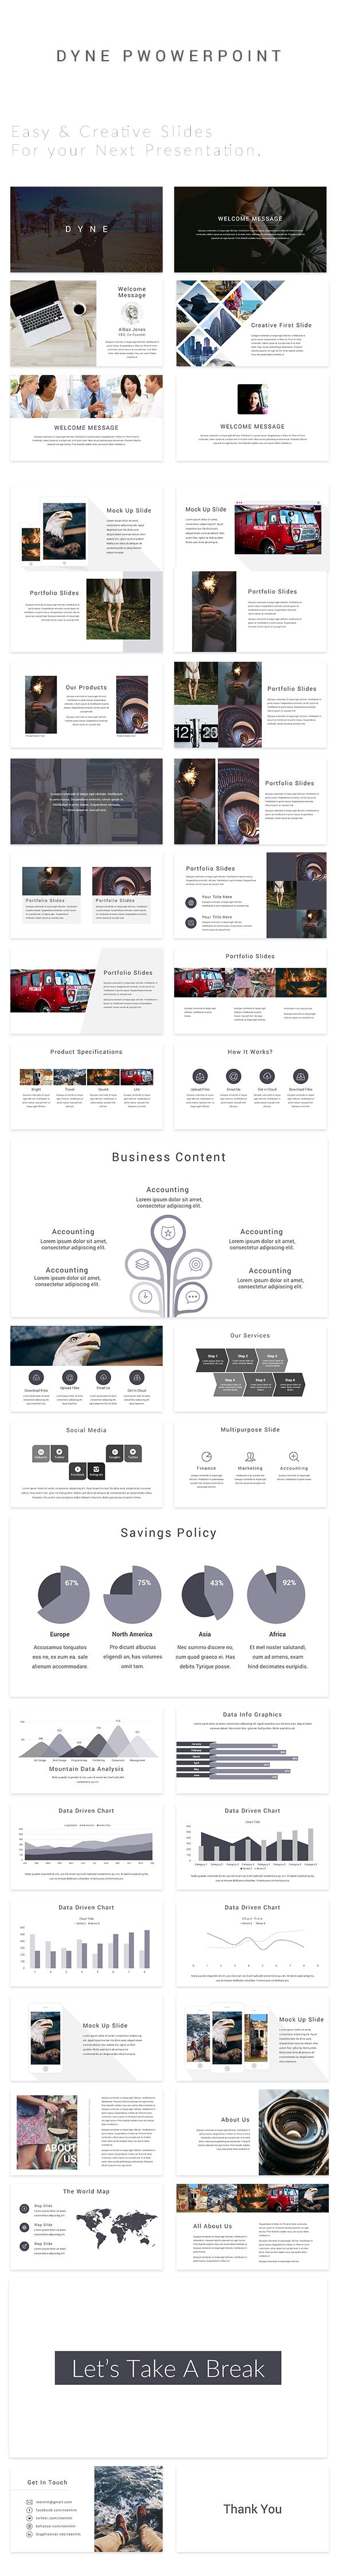 DYNE PowerPoint  #business powerpoint templates #corporate • Download ➝ https://graphicriver.net/item/dyne-powerpoint/18432252?ref=pxcr